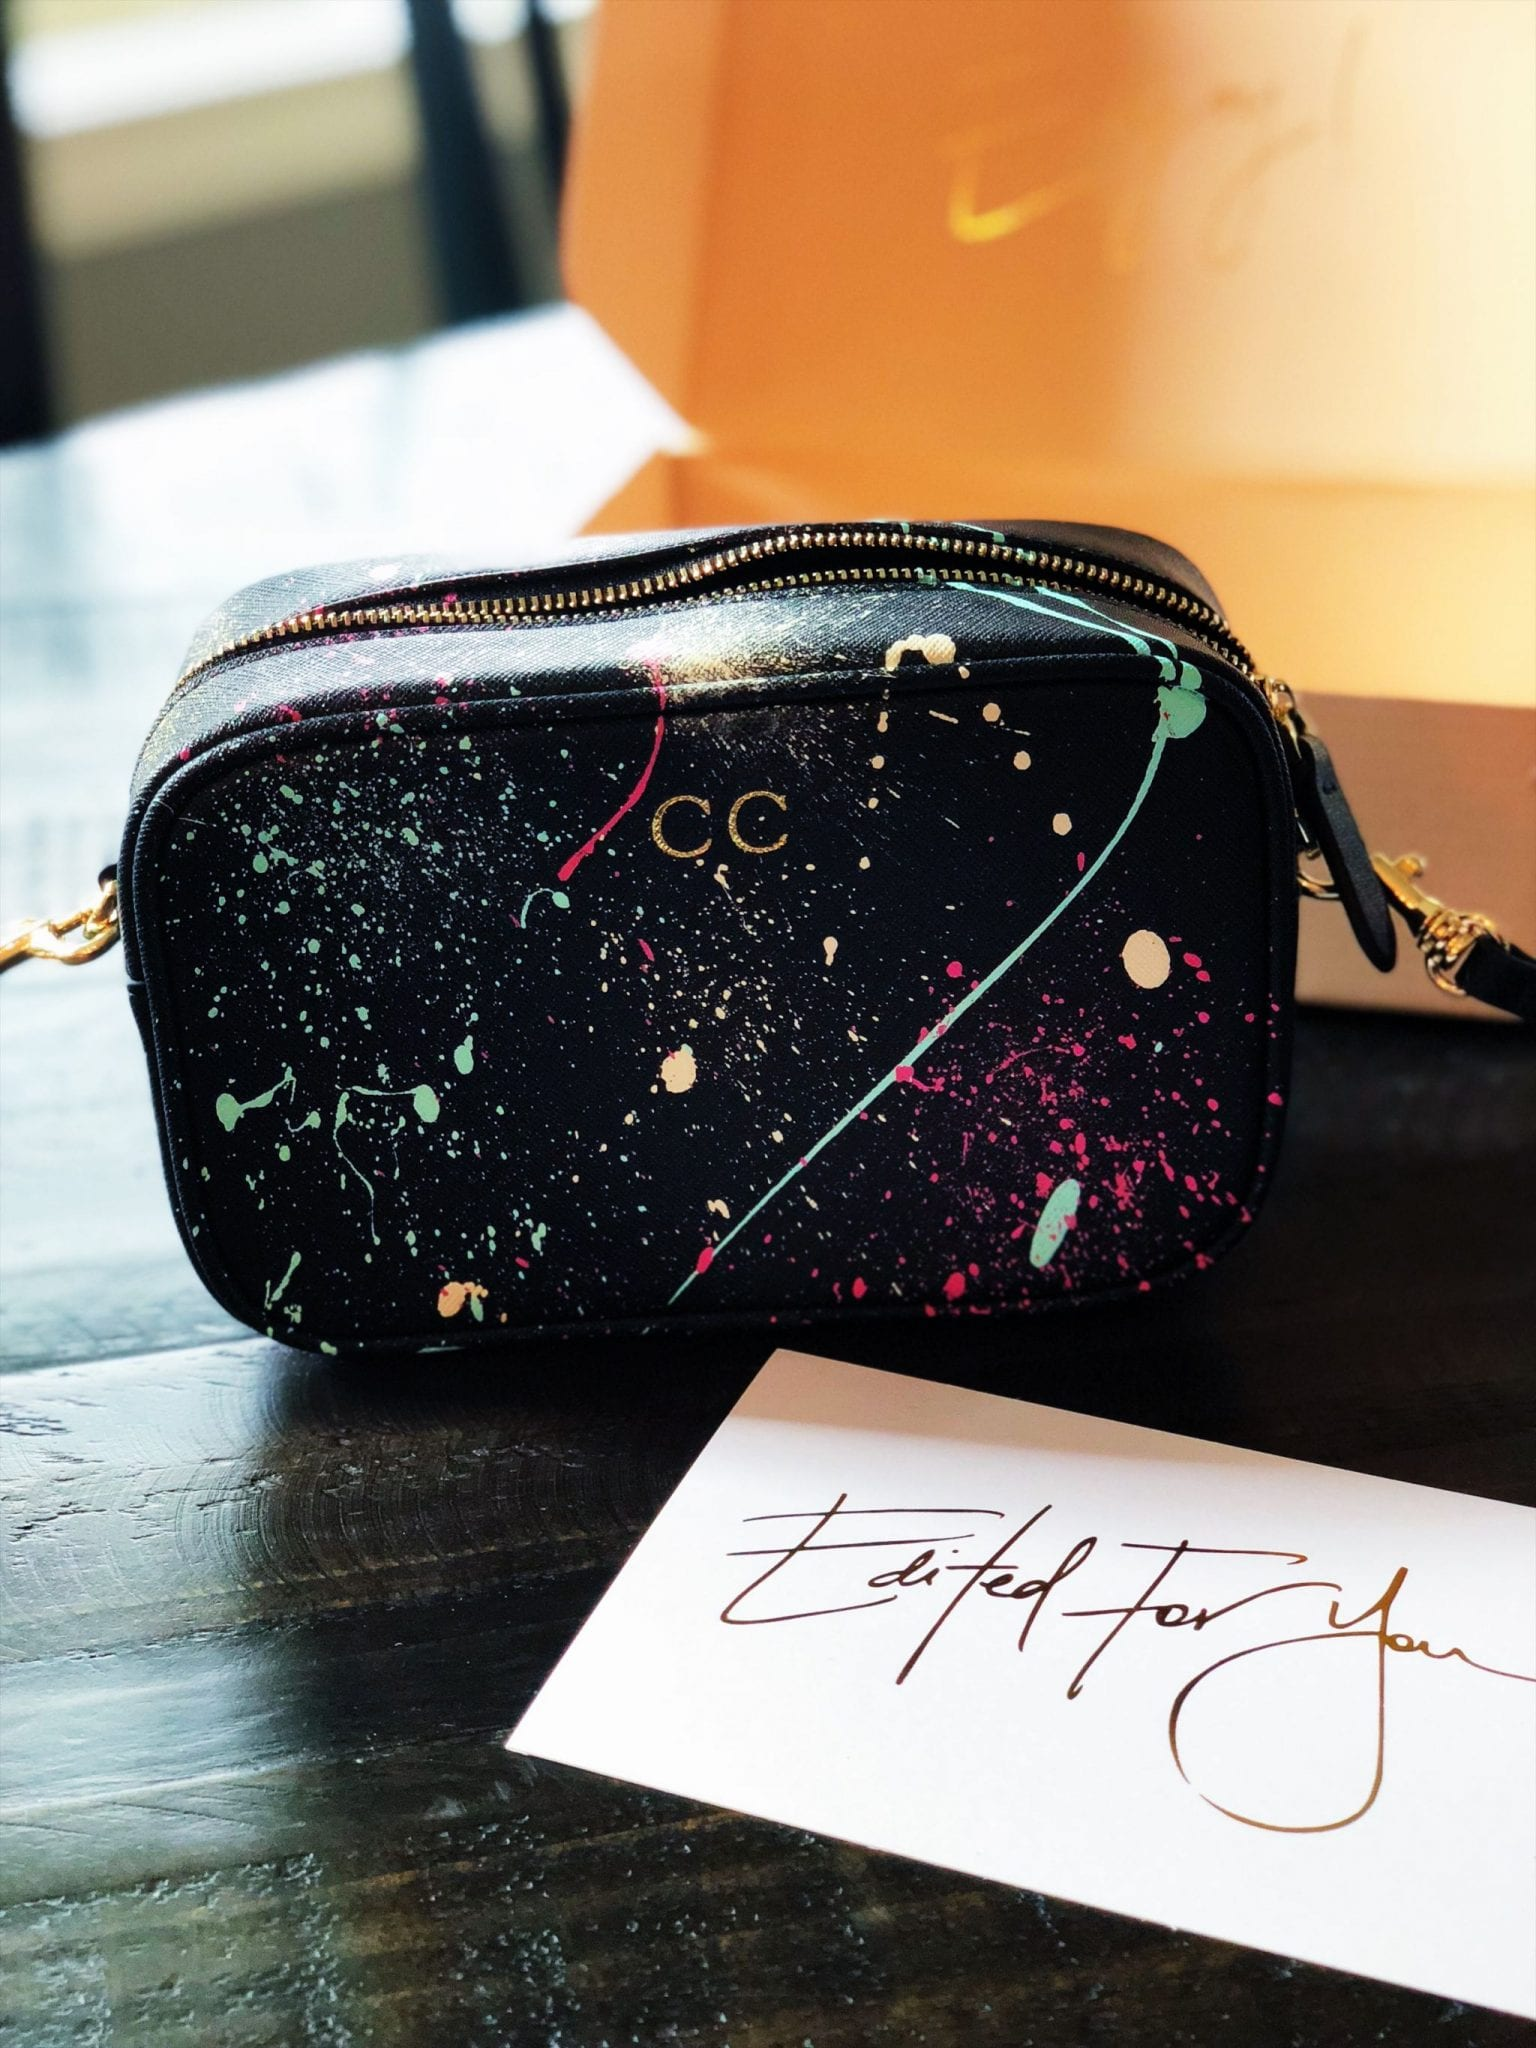 The Daily Edited Mini Cross Body Bag Graffiti Art Matt Litwack